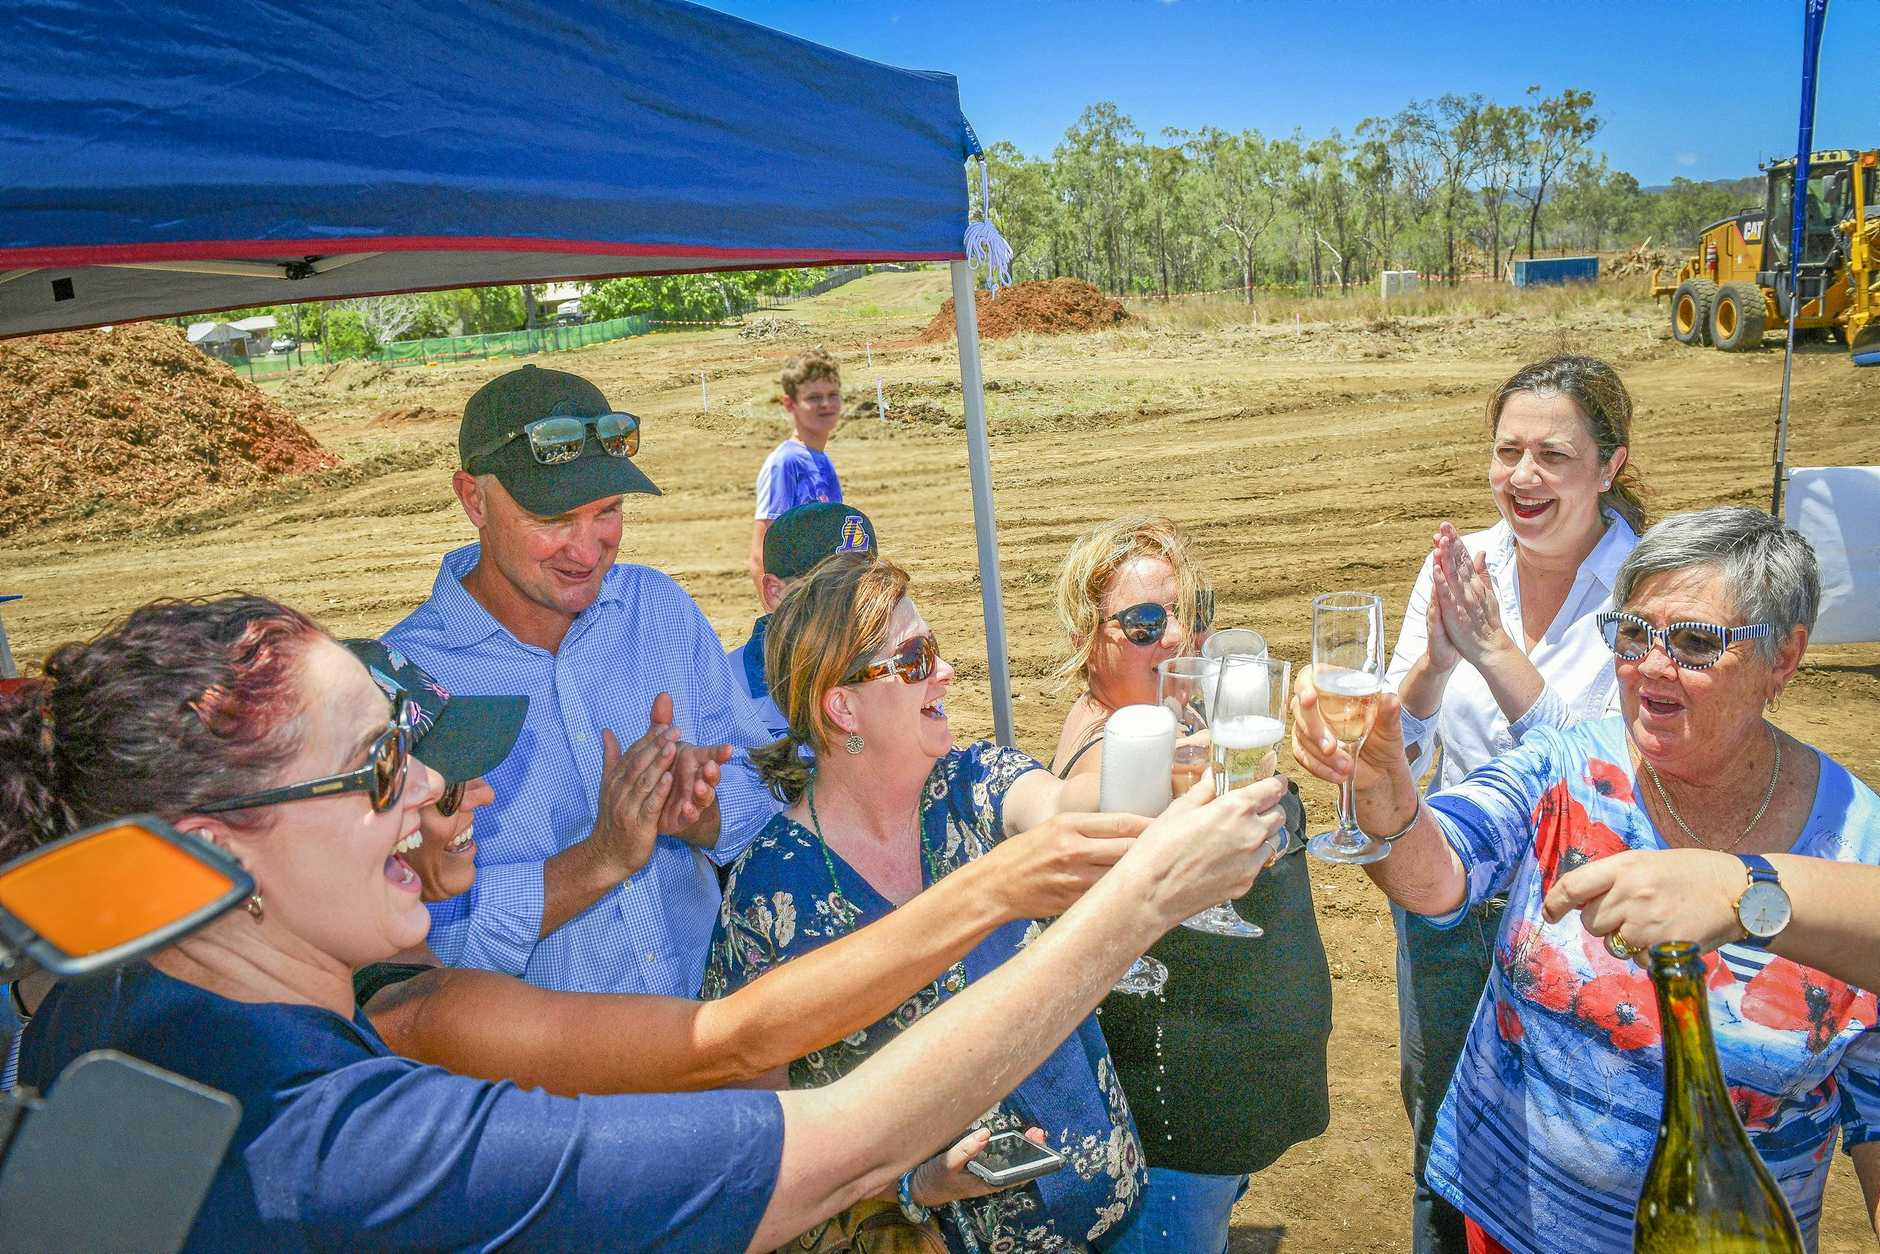 Calliope residents Lynda Ninness, Michelle Burke, Sasha Jorgensen and Bev Dwyer popped open a bottle of champagne with member for Gladstone Glenn Butcher and Queensland Premier Annastacia Palaszczuk to celebrate the turning of the first sod at the Calliope high school project.